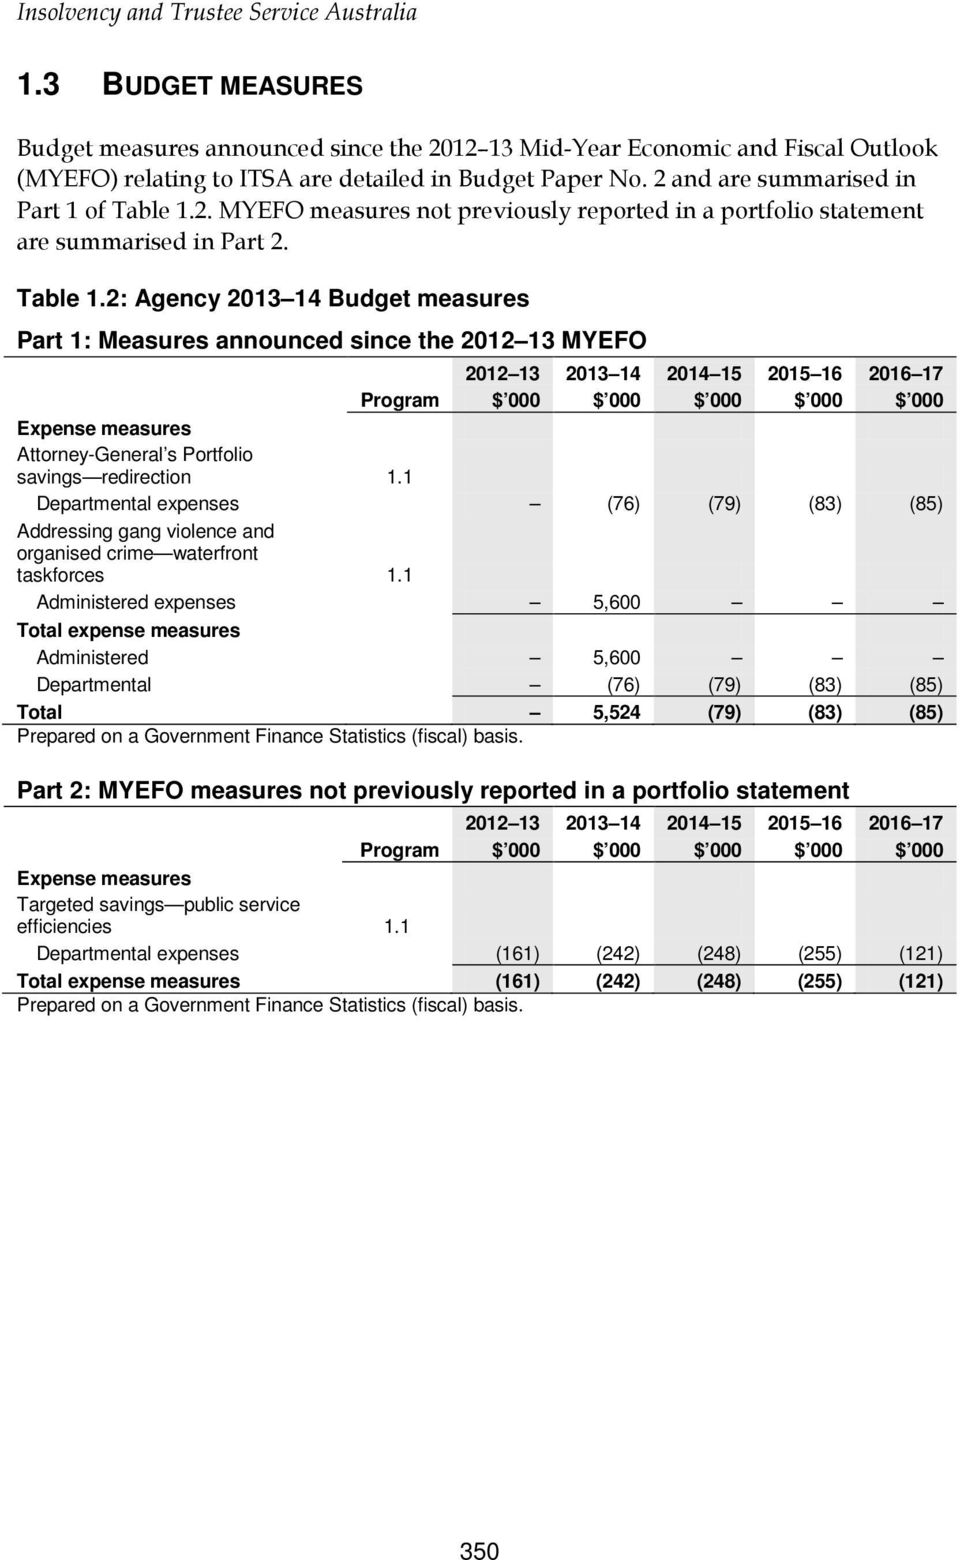 2. MYEFO measures not previously reported in a portfolio statement are summarised in Part 2. Table 1.